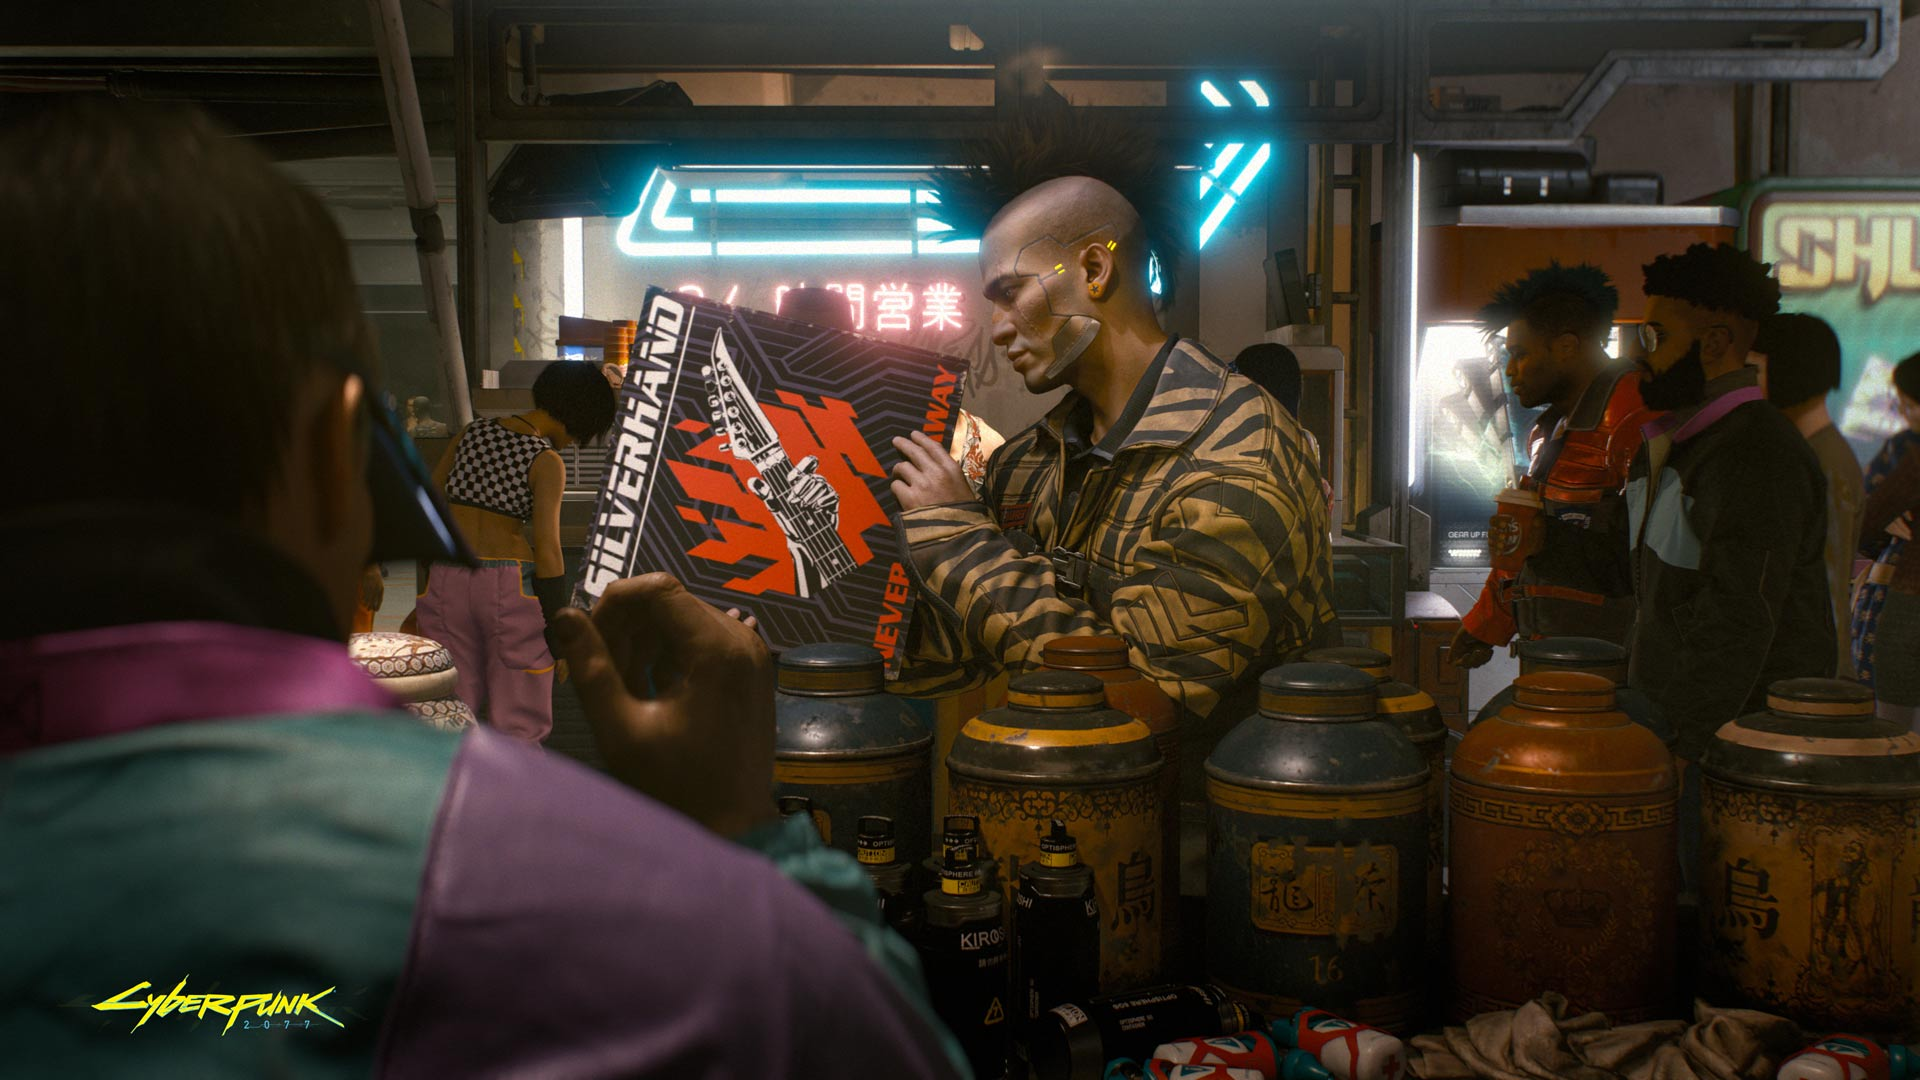 Cyberpunk 2077: Hefty and Inappropriate For Nintendo Switch